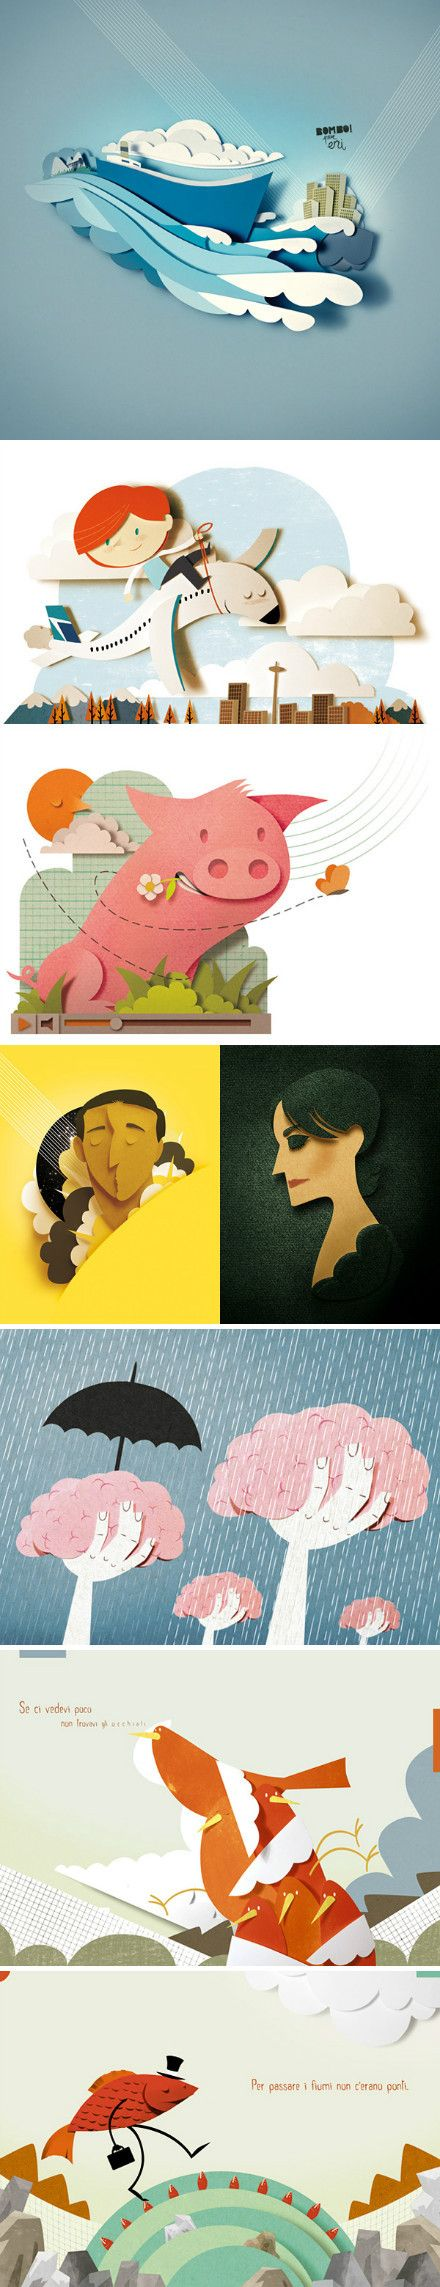 8 good examples of paper sculpture - so expressive - I think my favourite is the one with the cloud trees